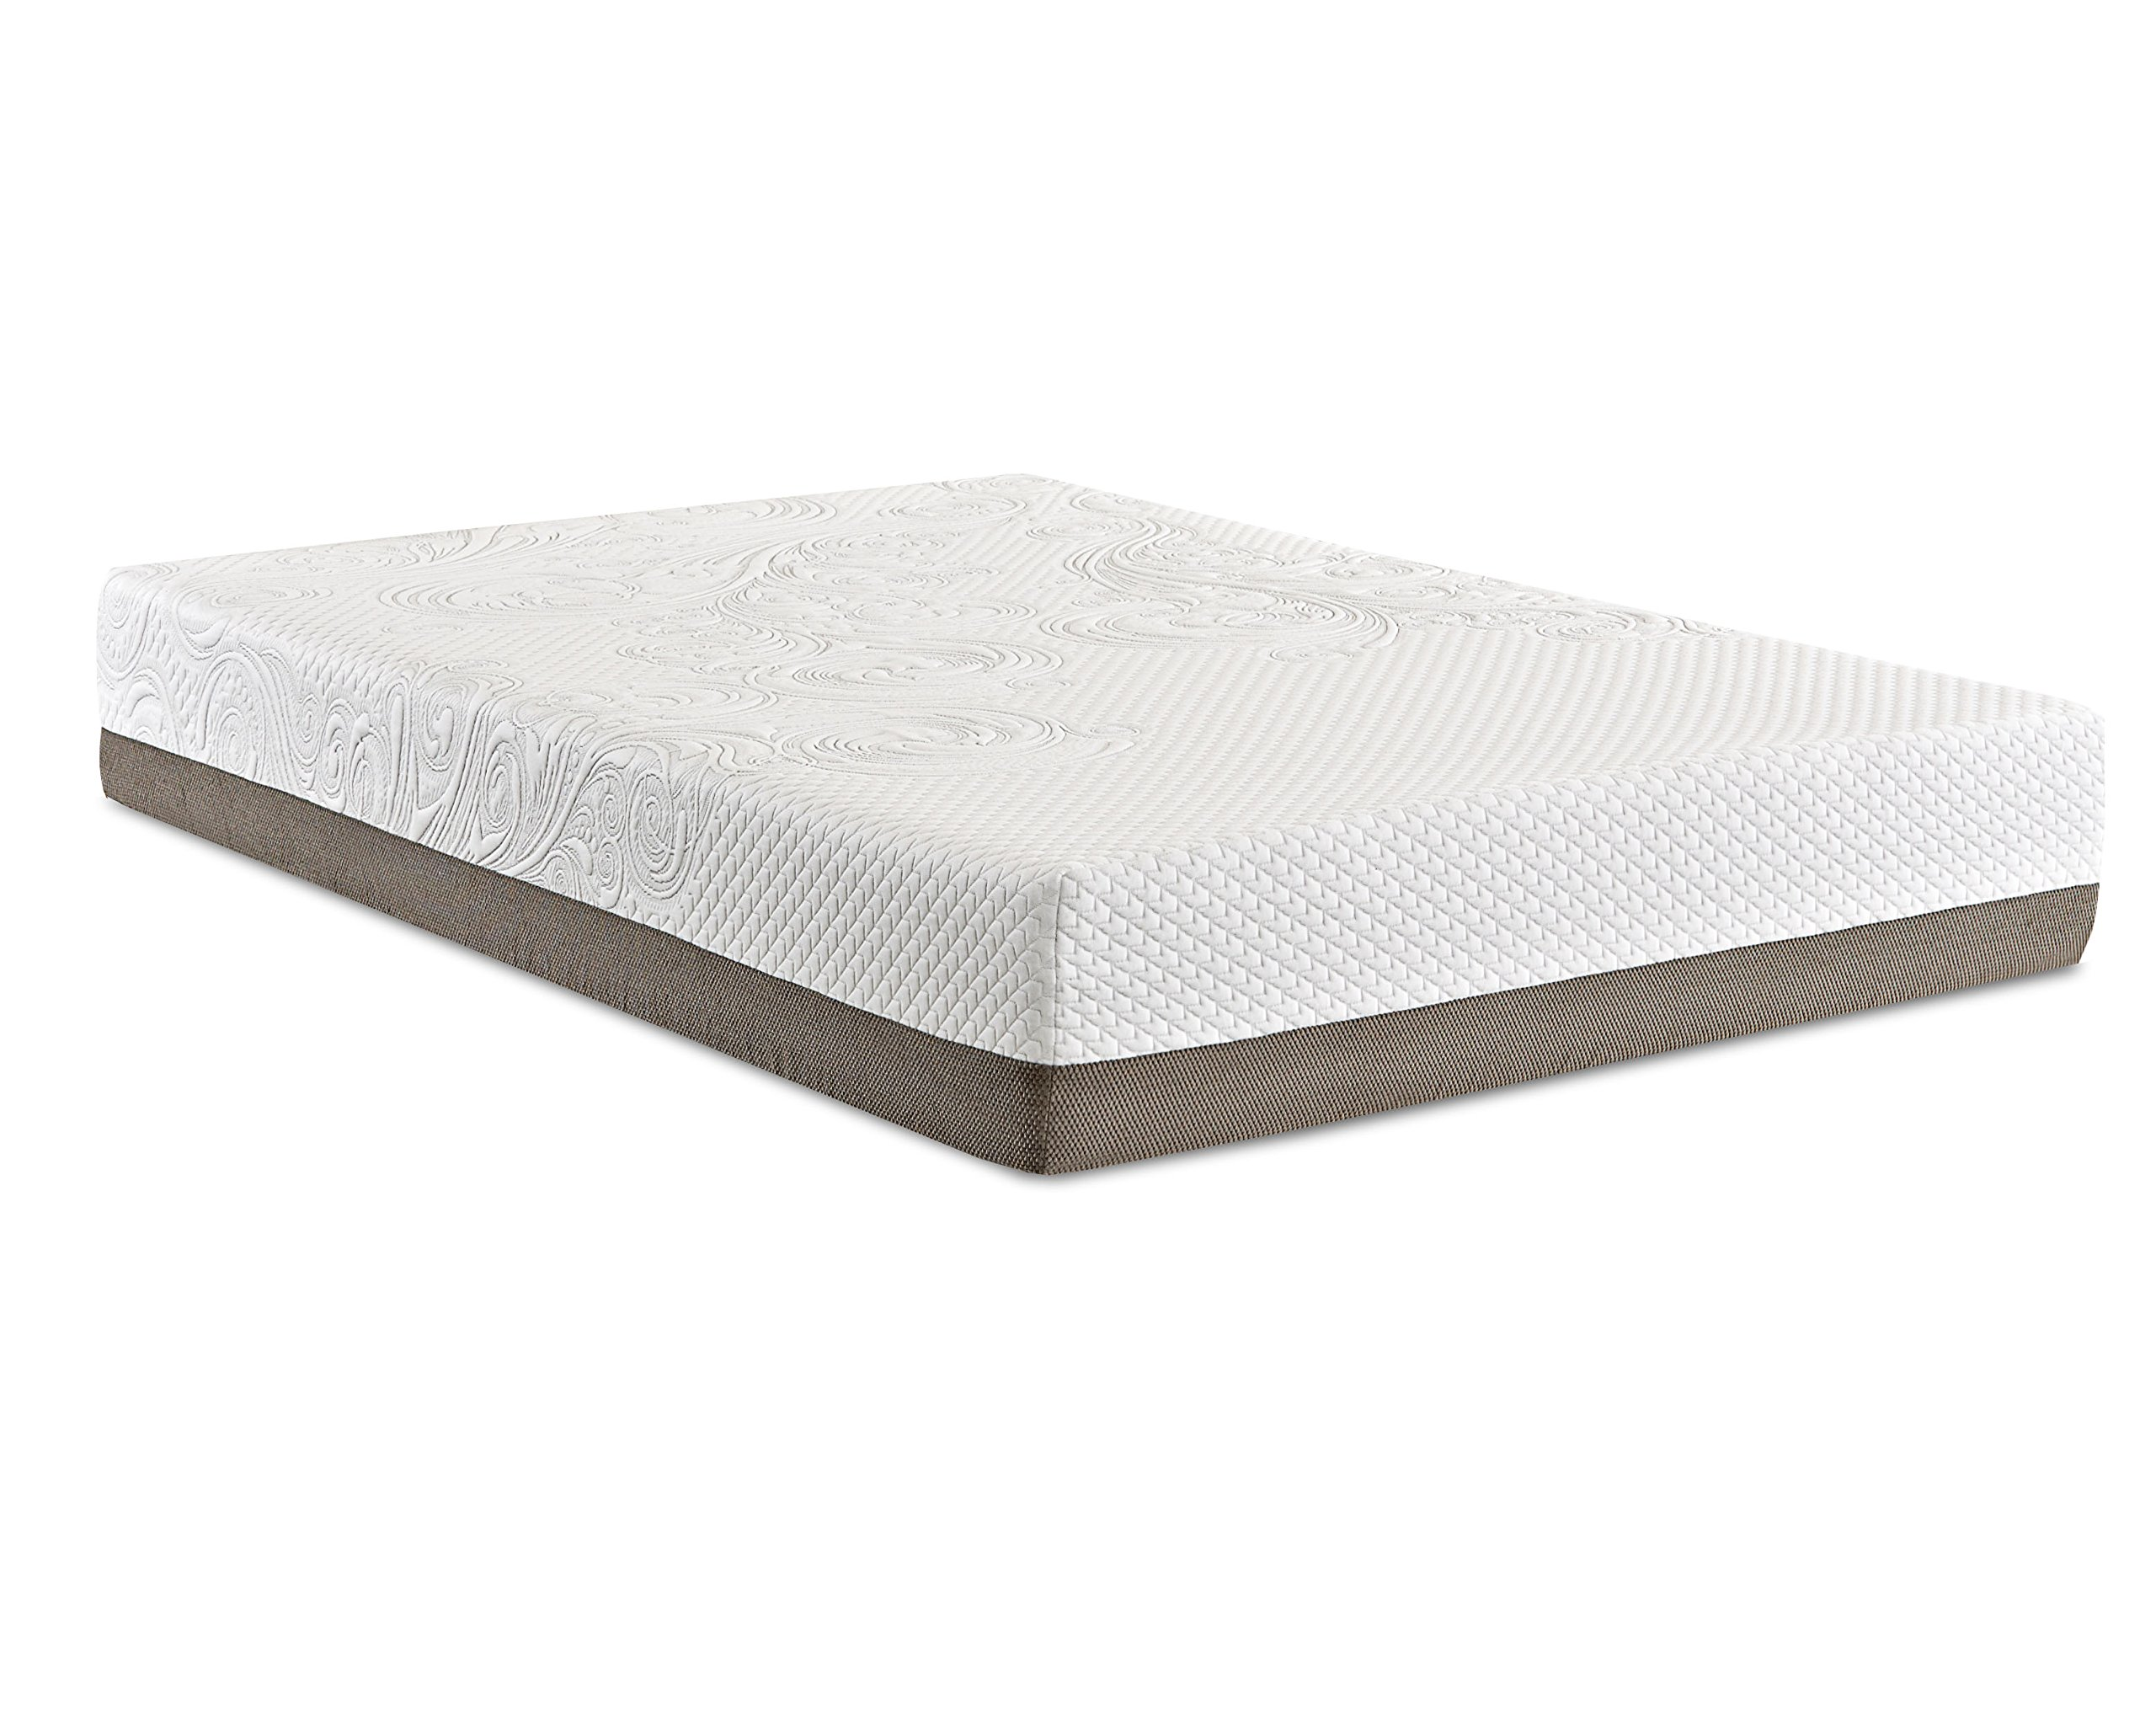 Klaussner Strata 12'' Puregel Mattress, Queen, White